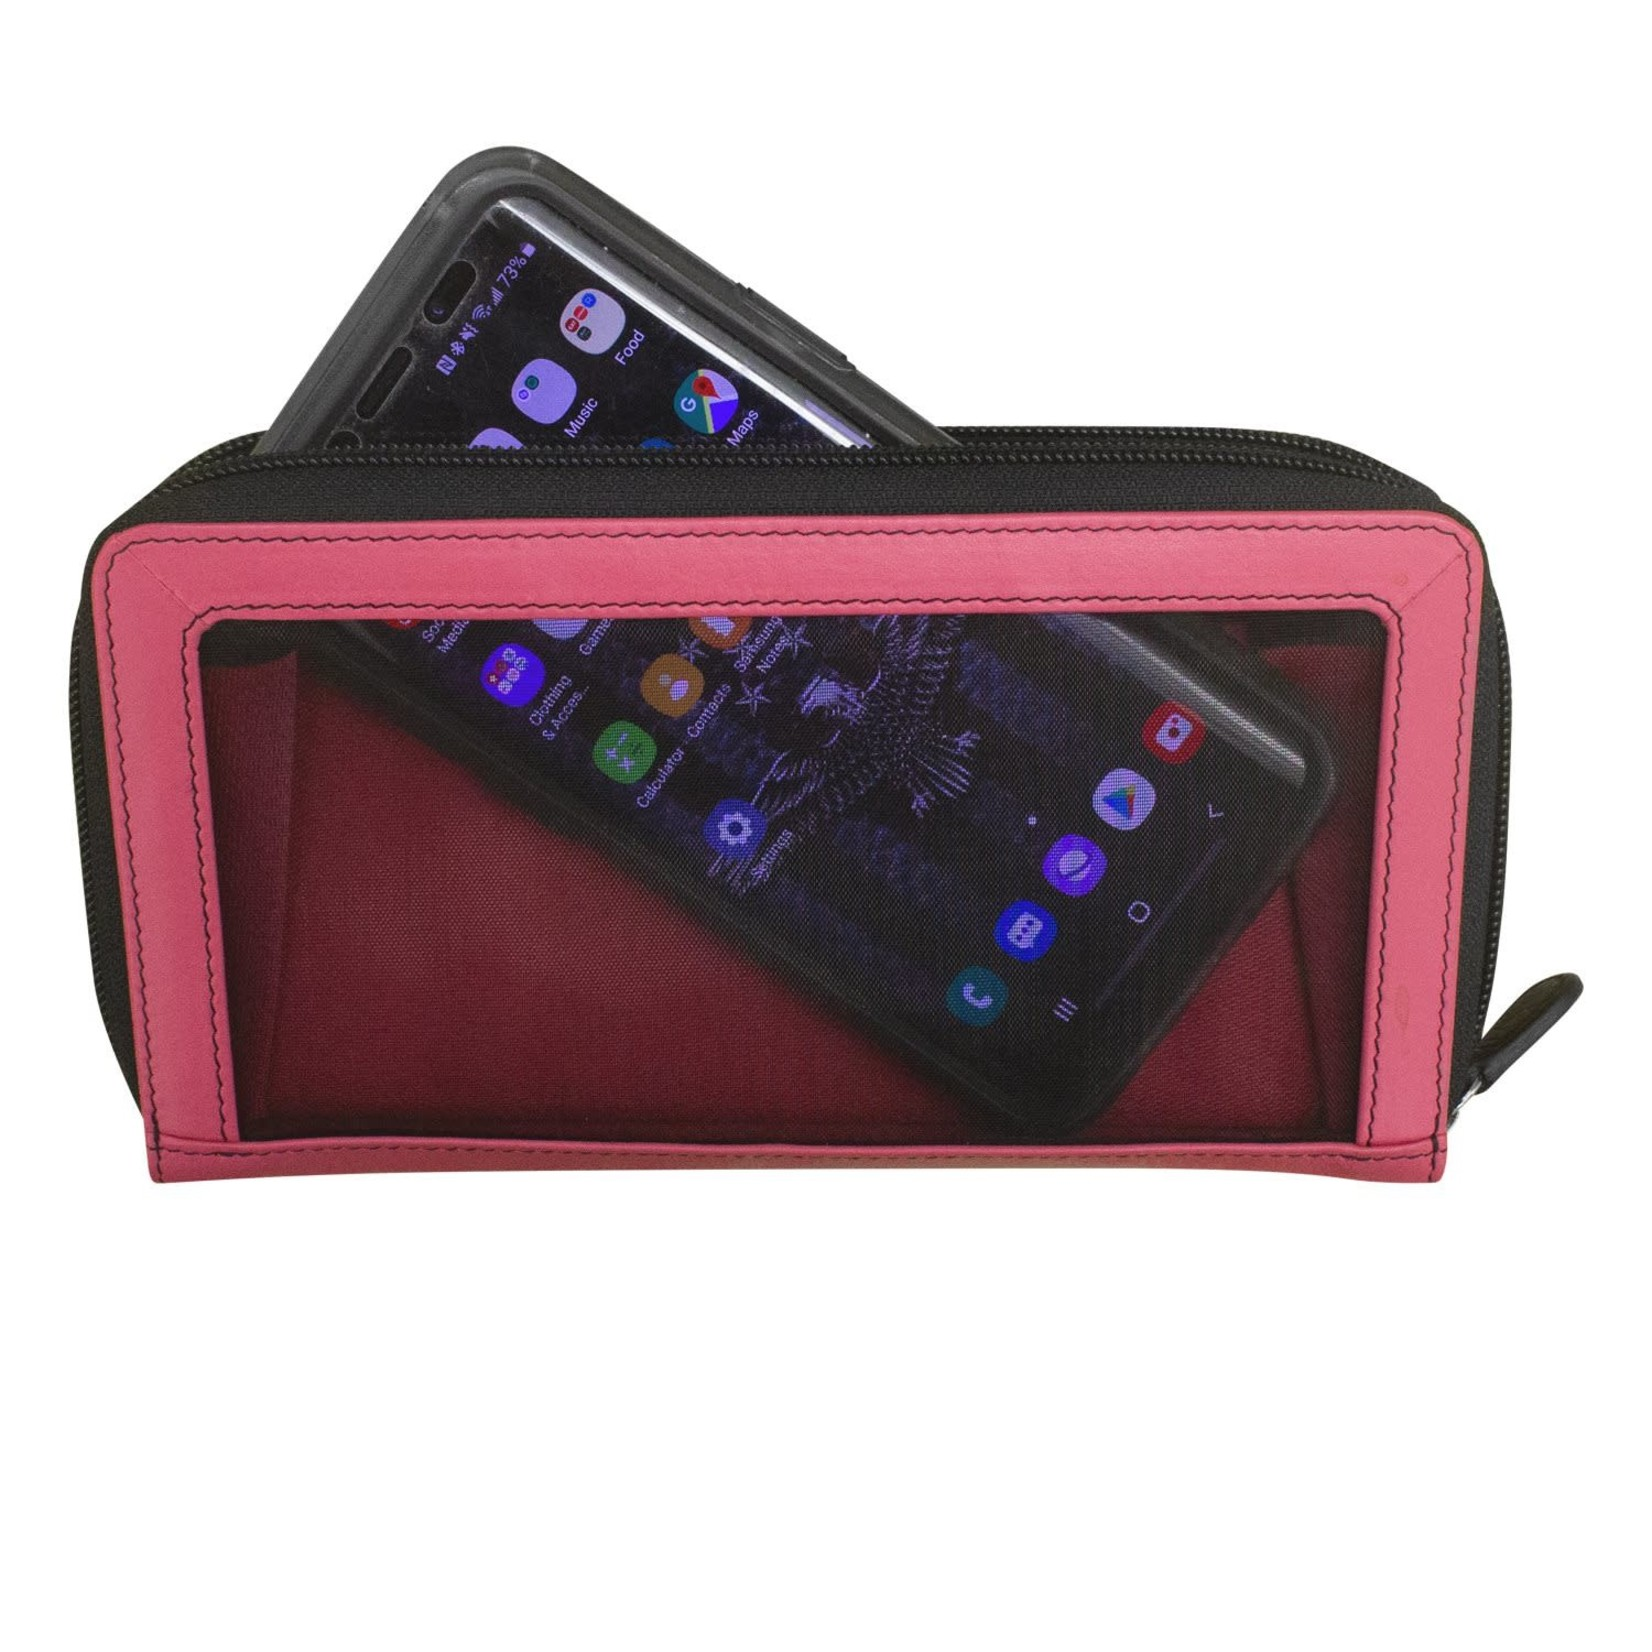 Leather Handbags and Accessories 7400 Hot Pink/Black - Zip Around Wallet w/Touch Screen